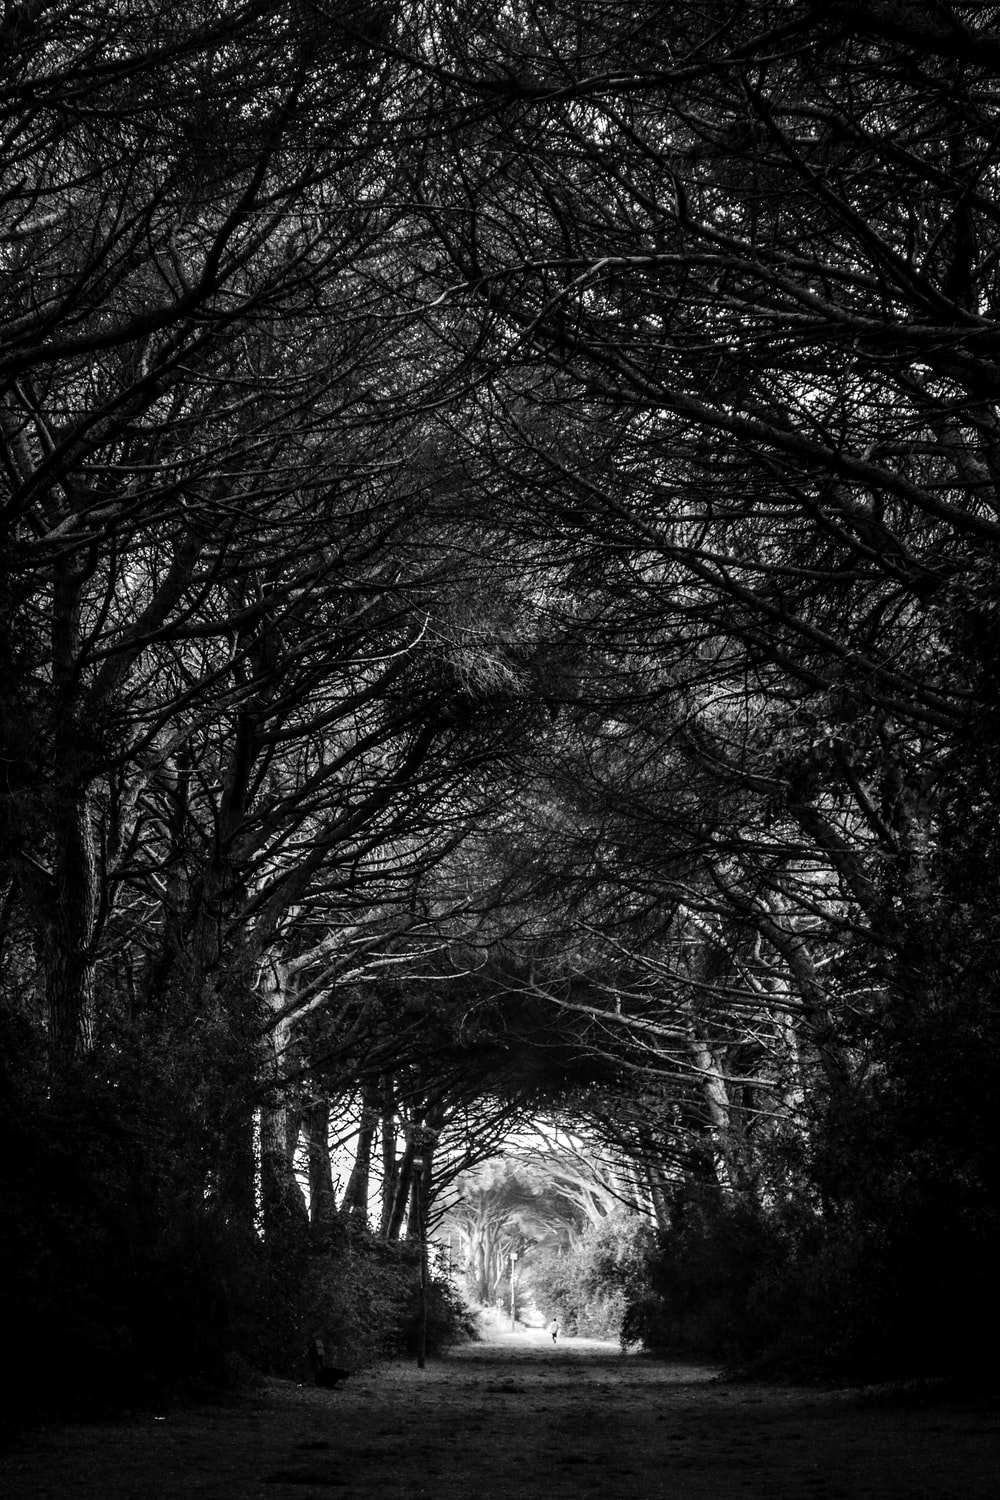 grayscale road in between trees